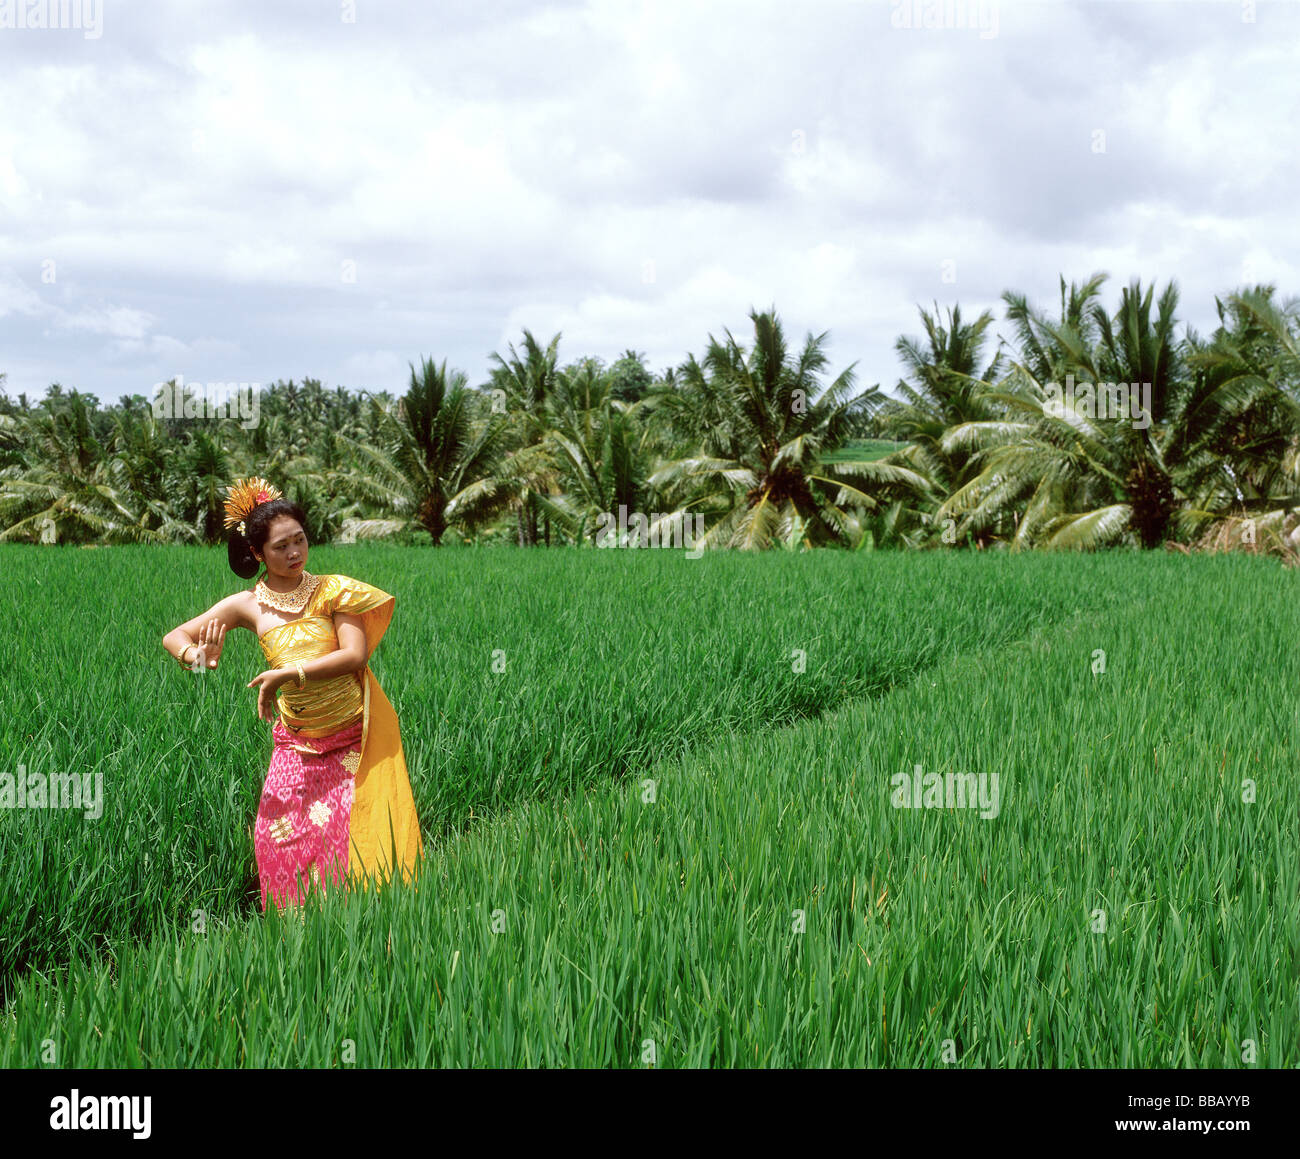 indonesia bali balinese dancer in padi fields trees in background stock photo alamy https www alamy com stock photo indonesia bali balinese dancer in padi fields trees in background 24213039 html